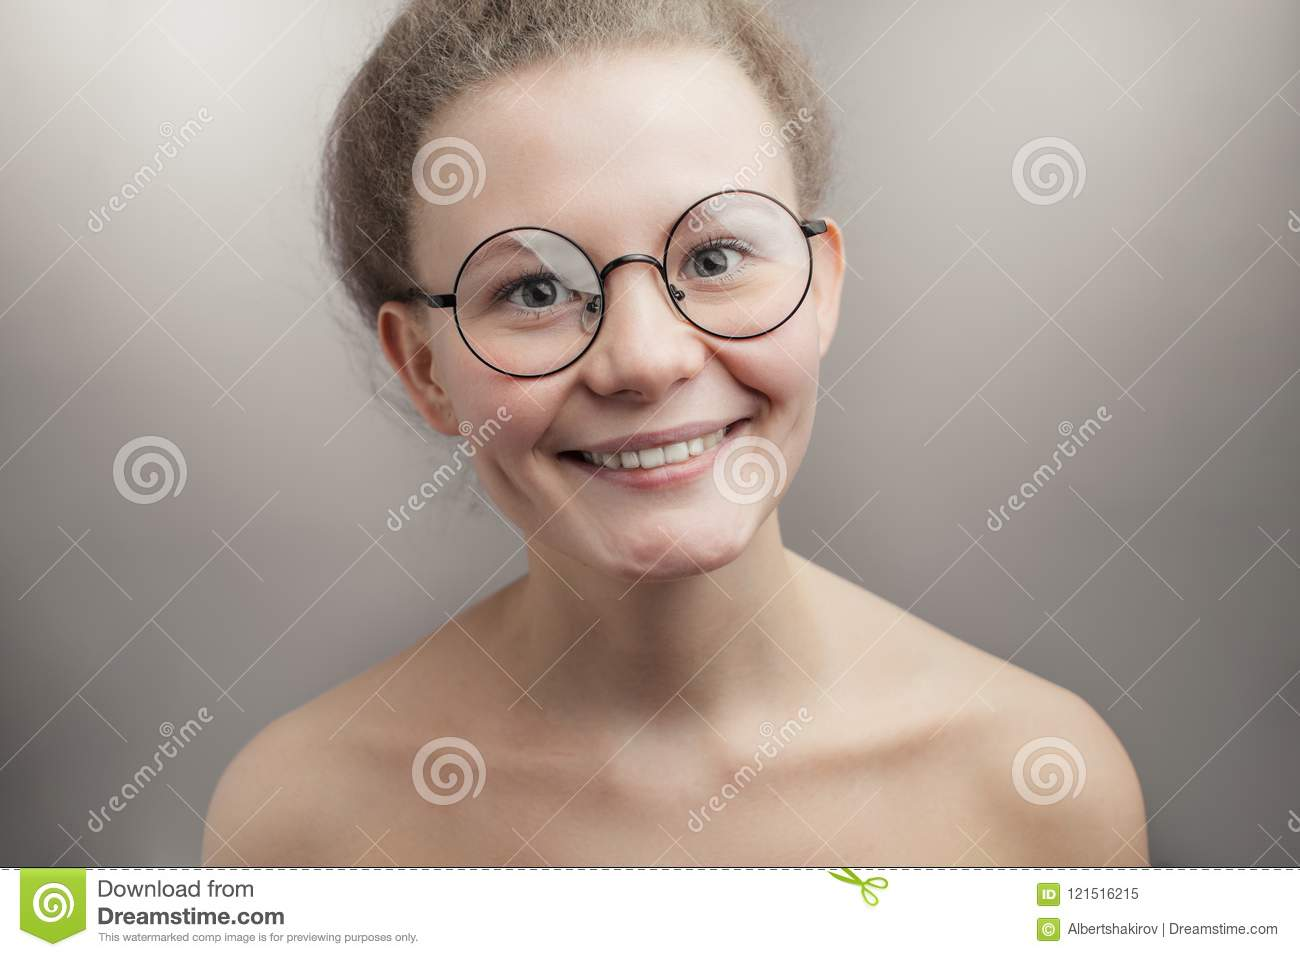 Nude wife wearing glasses